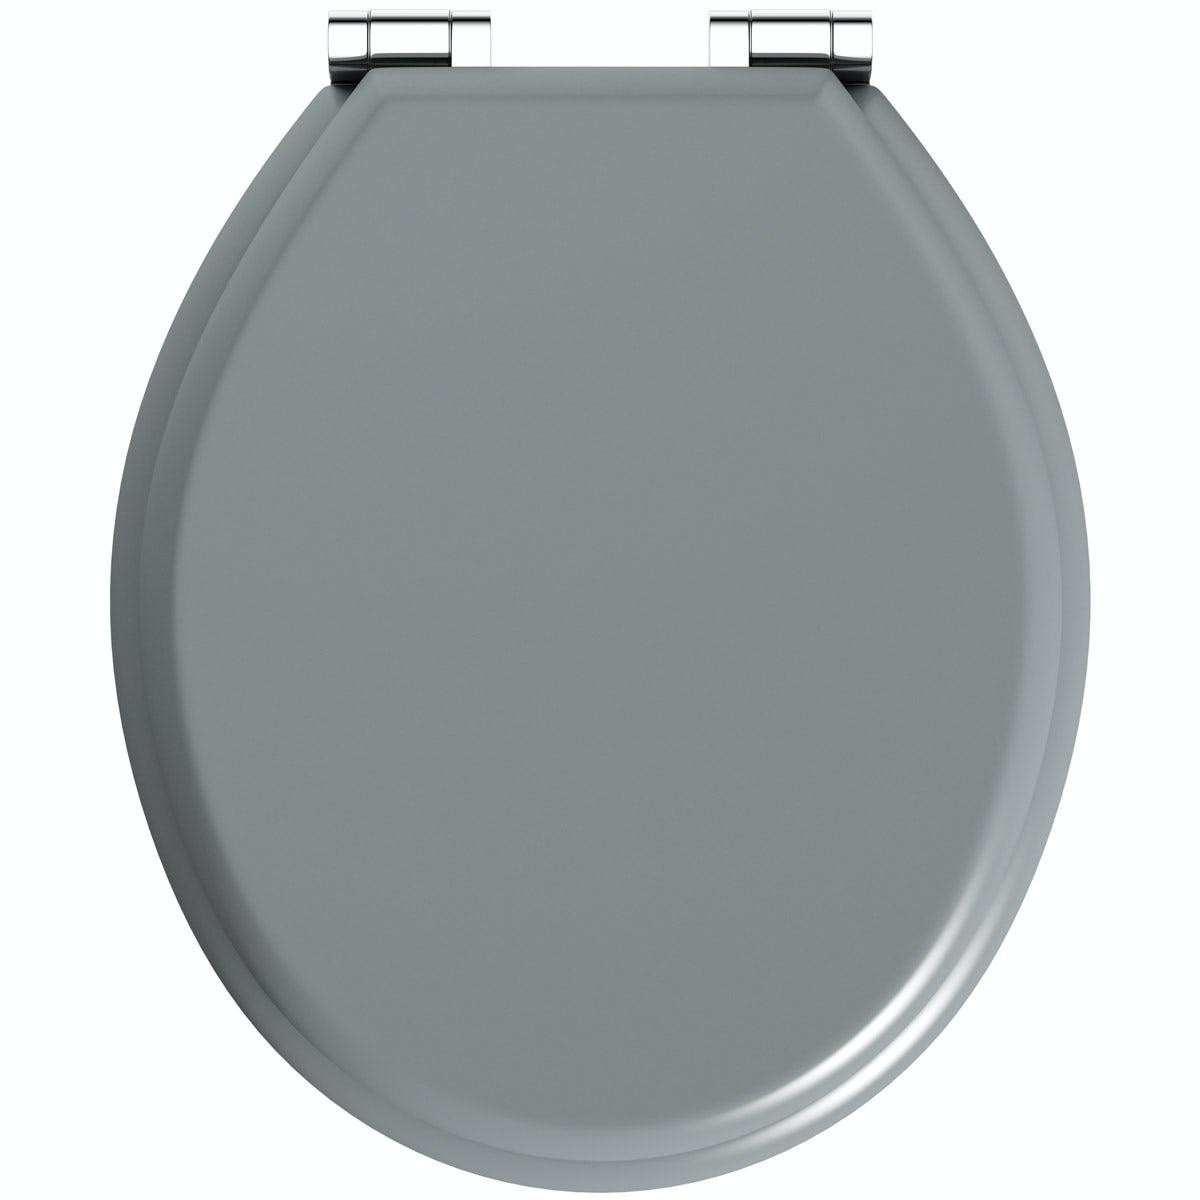 The Bath Co  grey soft close wooden toilet seat Grey MDF